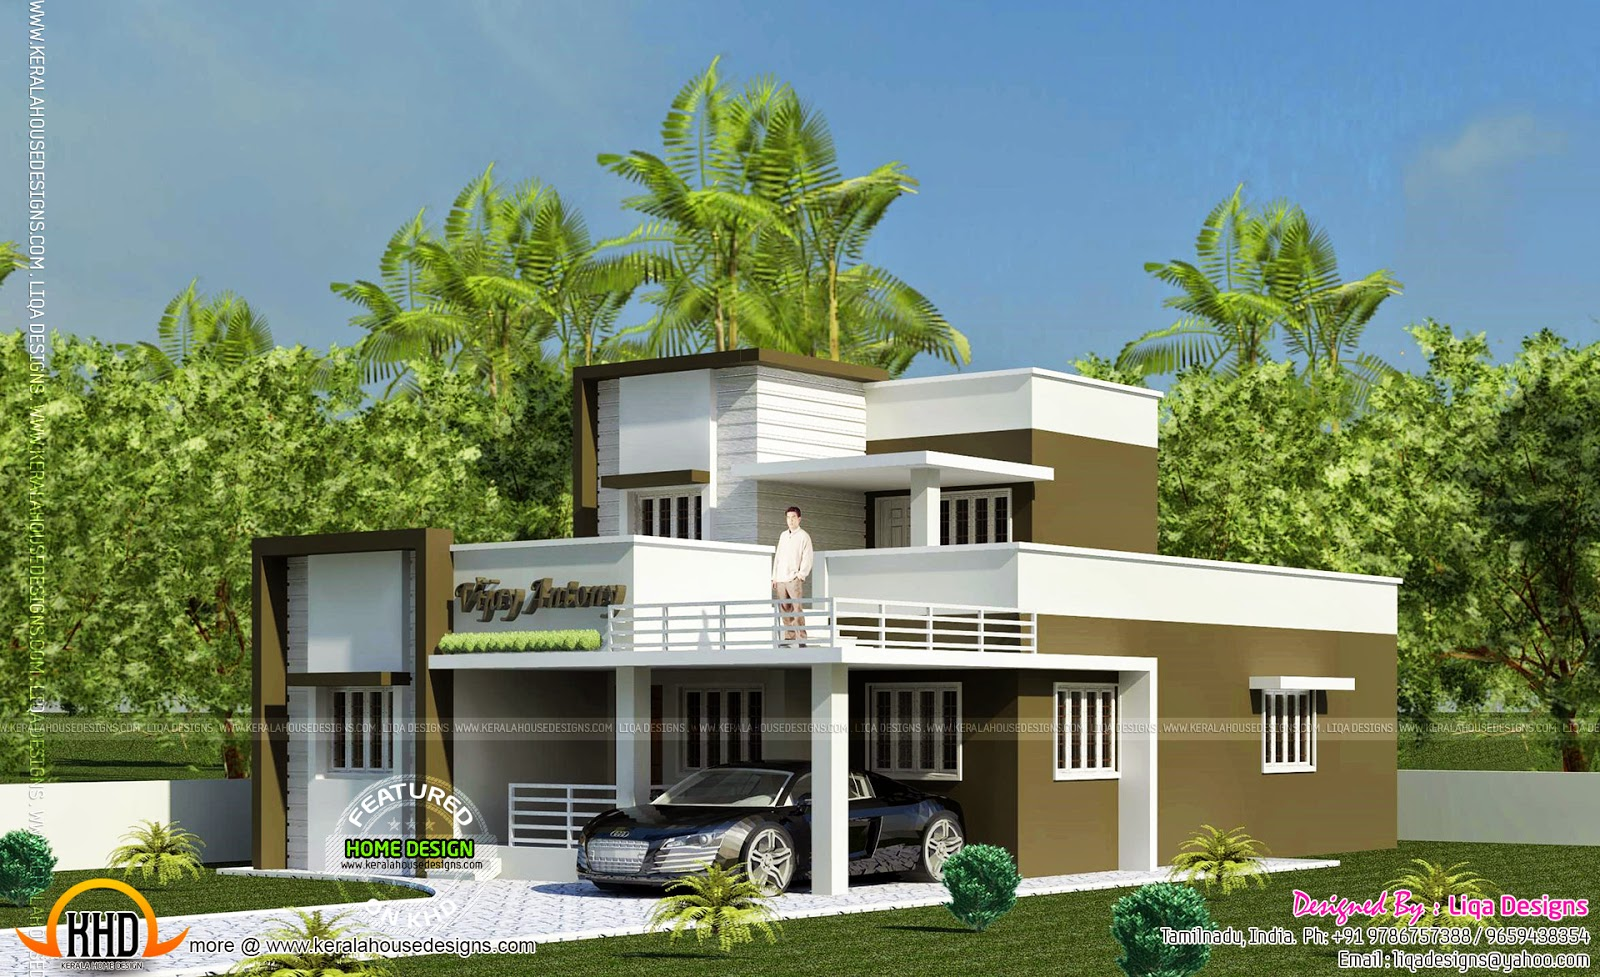 1365 sq ft 2 bedroom small house design kerala home for Home designs in tamilnadu